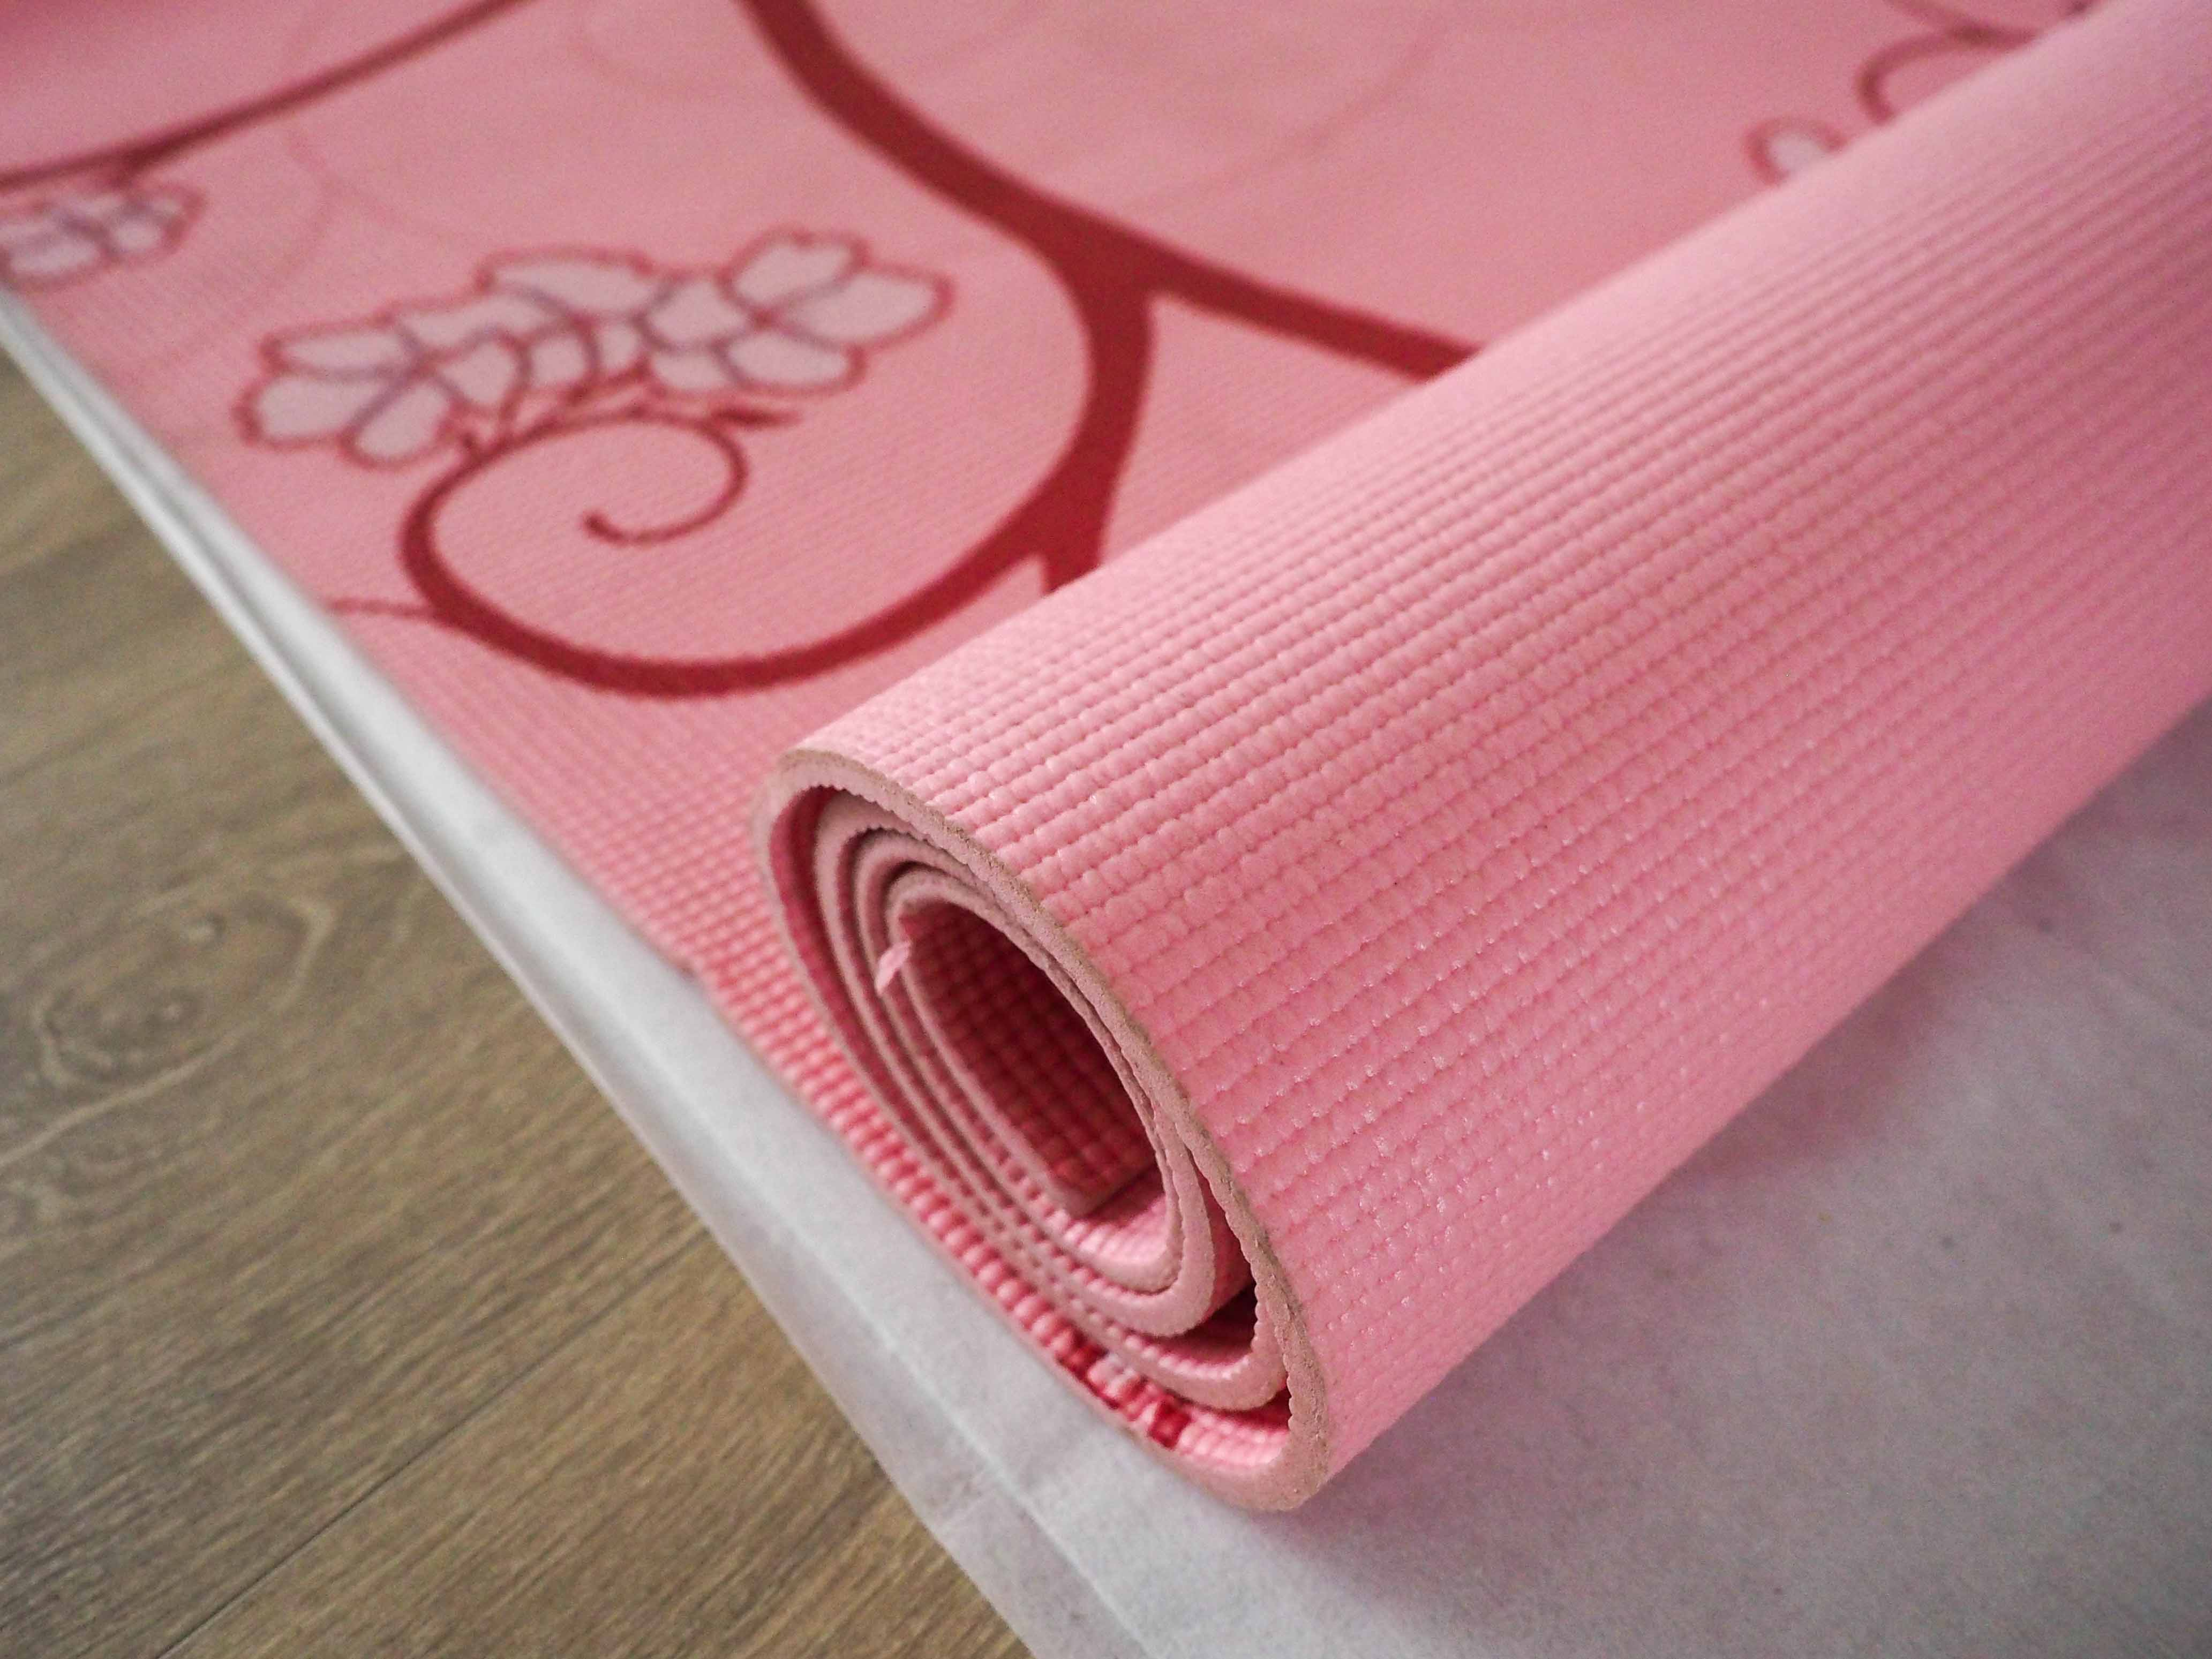 yoga mat, mental health